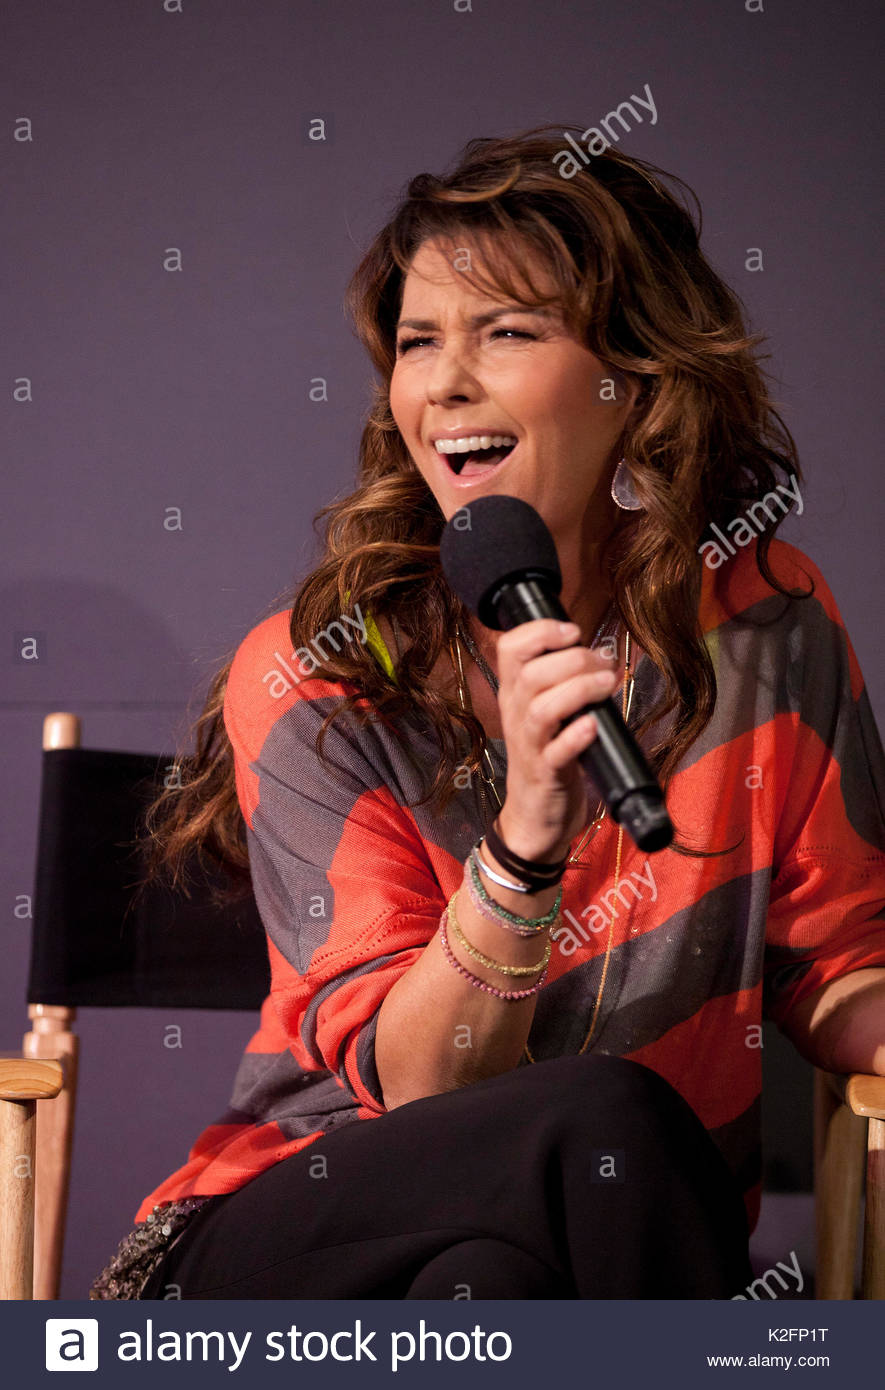 Hosts meet stock photos hosts meet stock images page 7 alamy apple store hosts meet the author shania twain from m4hsunfo